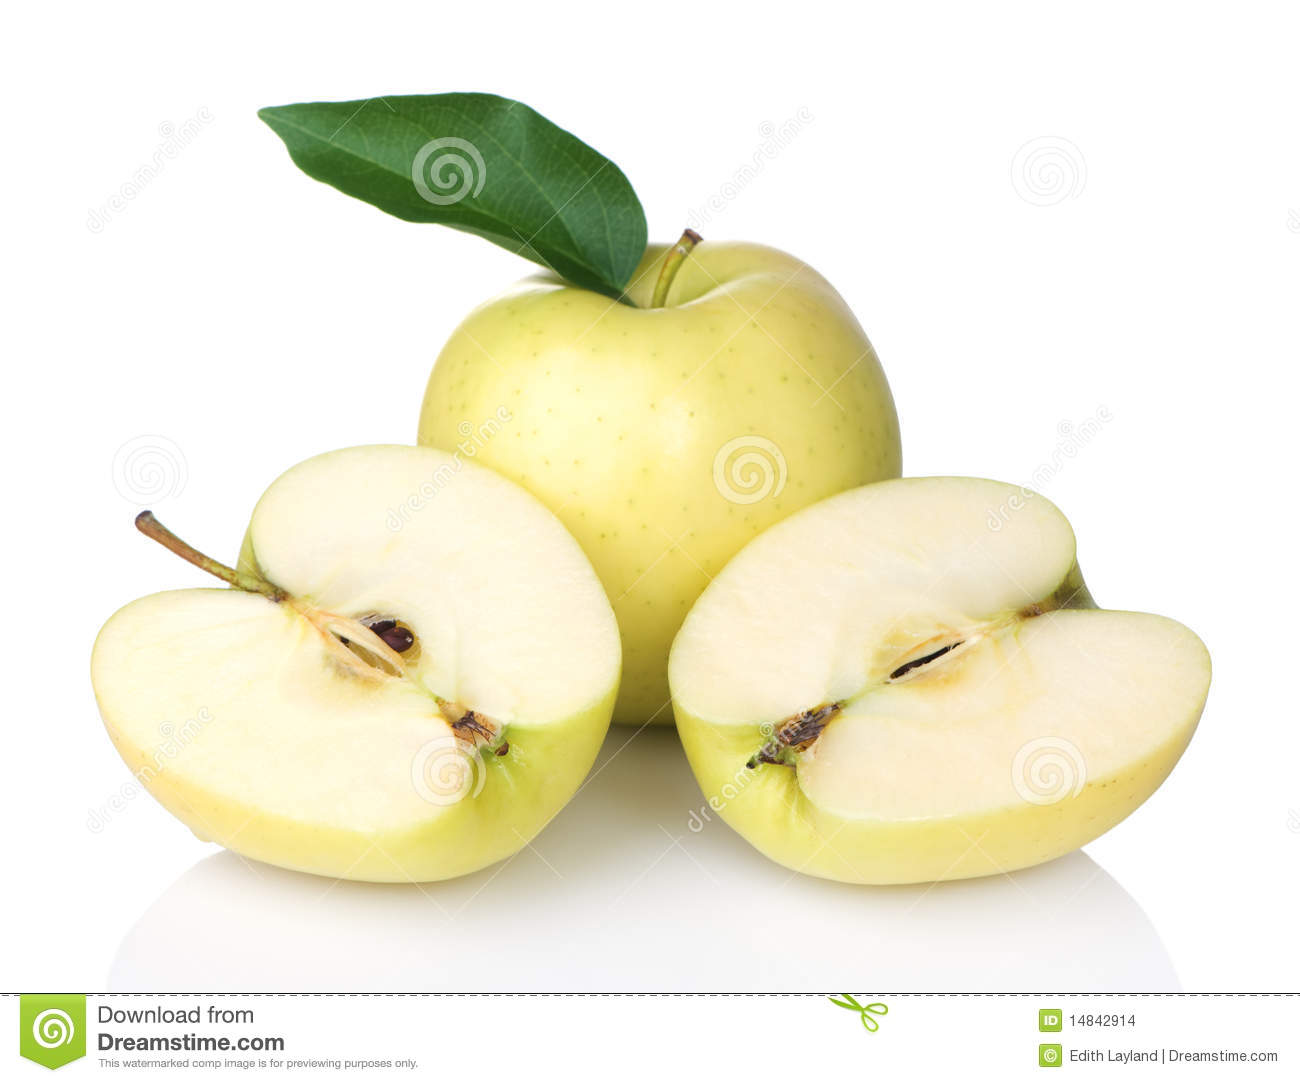 Golden Delicious Apples With One Sliced in Half